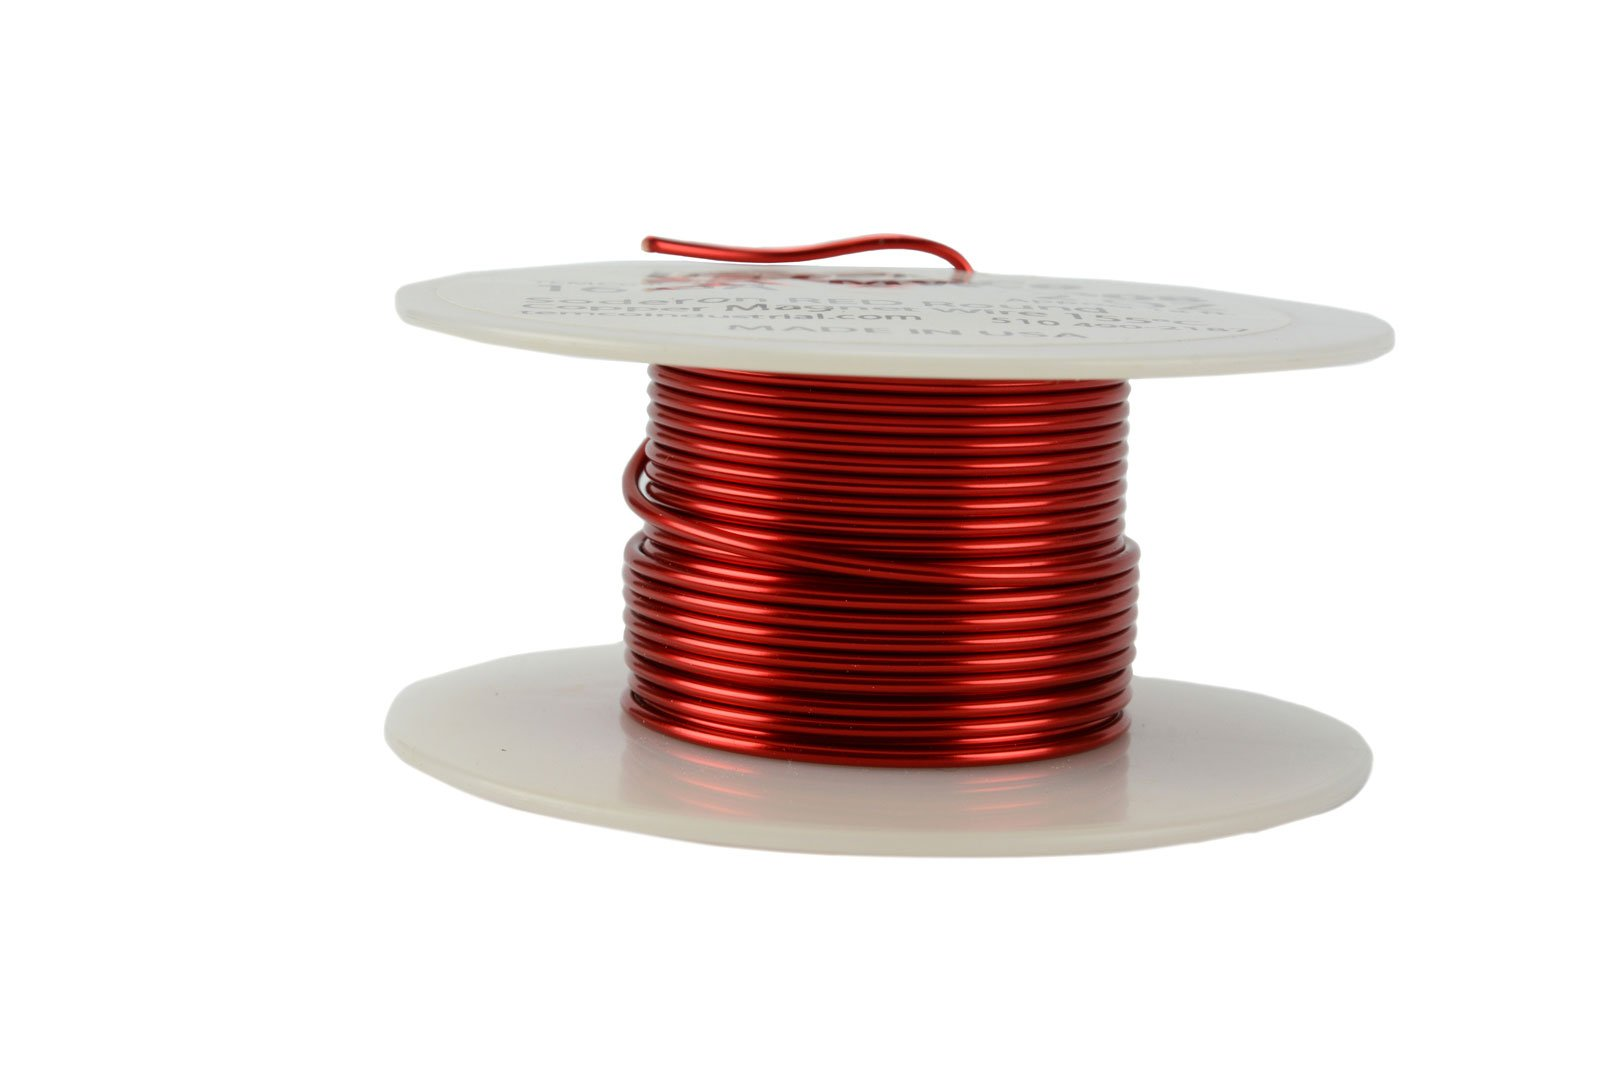 TEMCo 16 AWG Copper Magnet Wire - 2 oz 16 ft 155°C Magnetic Coil Red